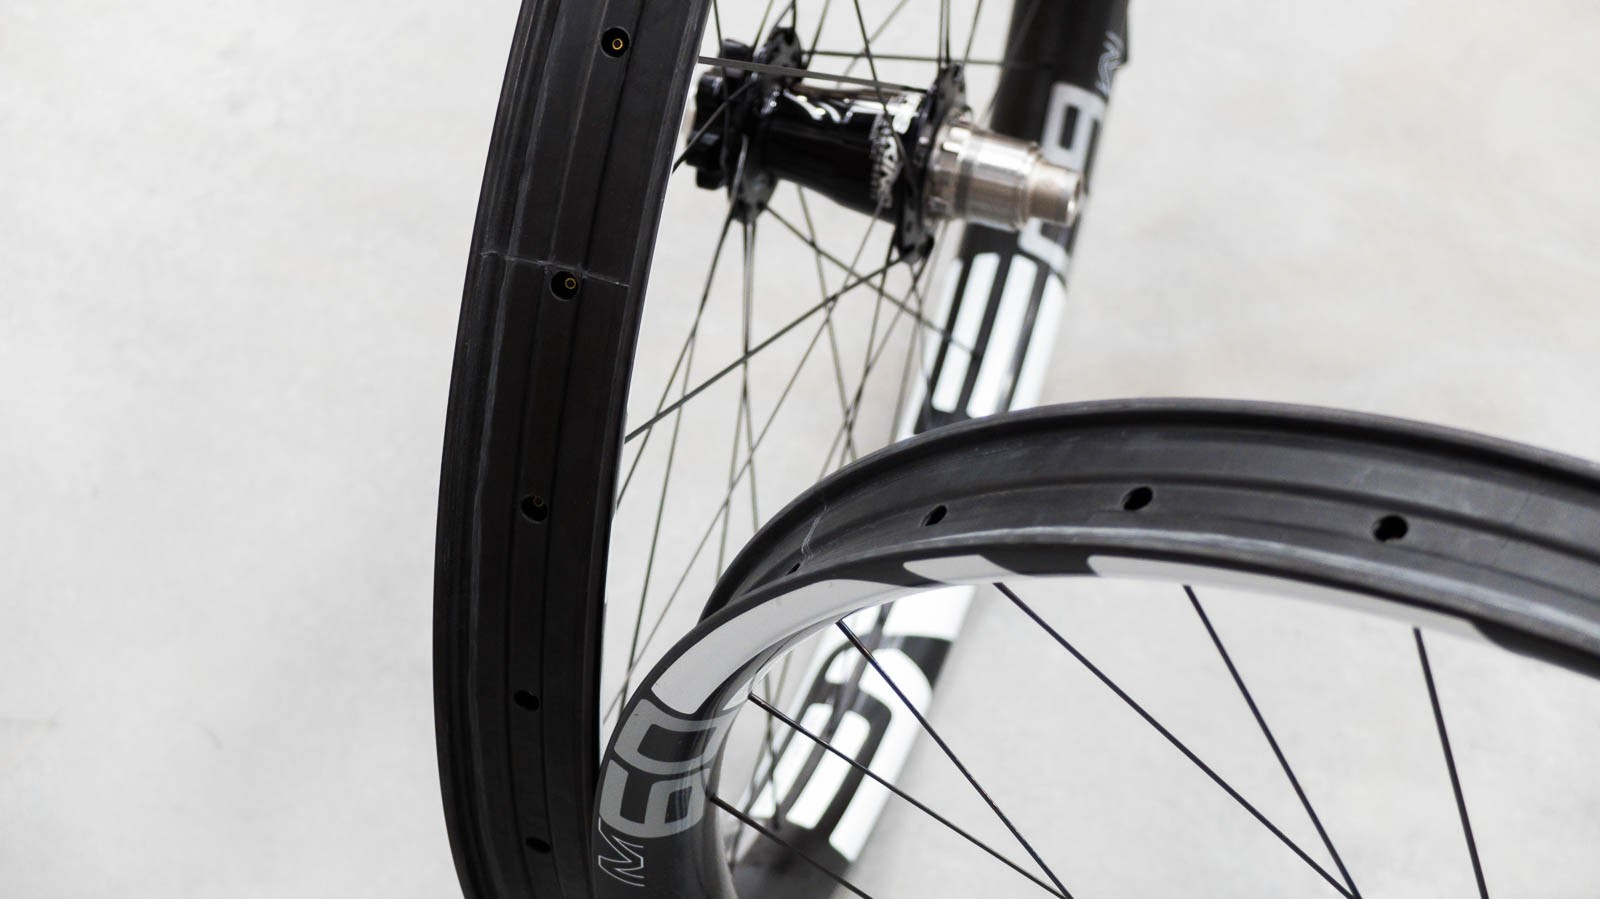 The dropped channel in the centre of the rim is said to improve tubeless set up